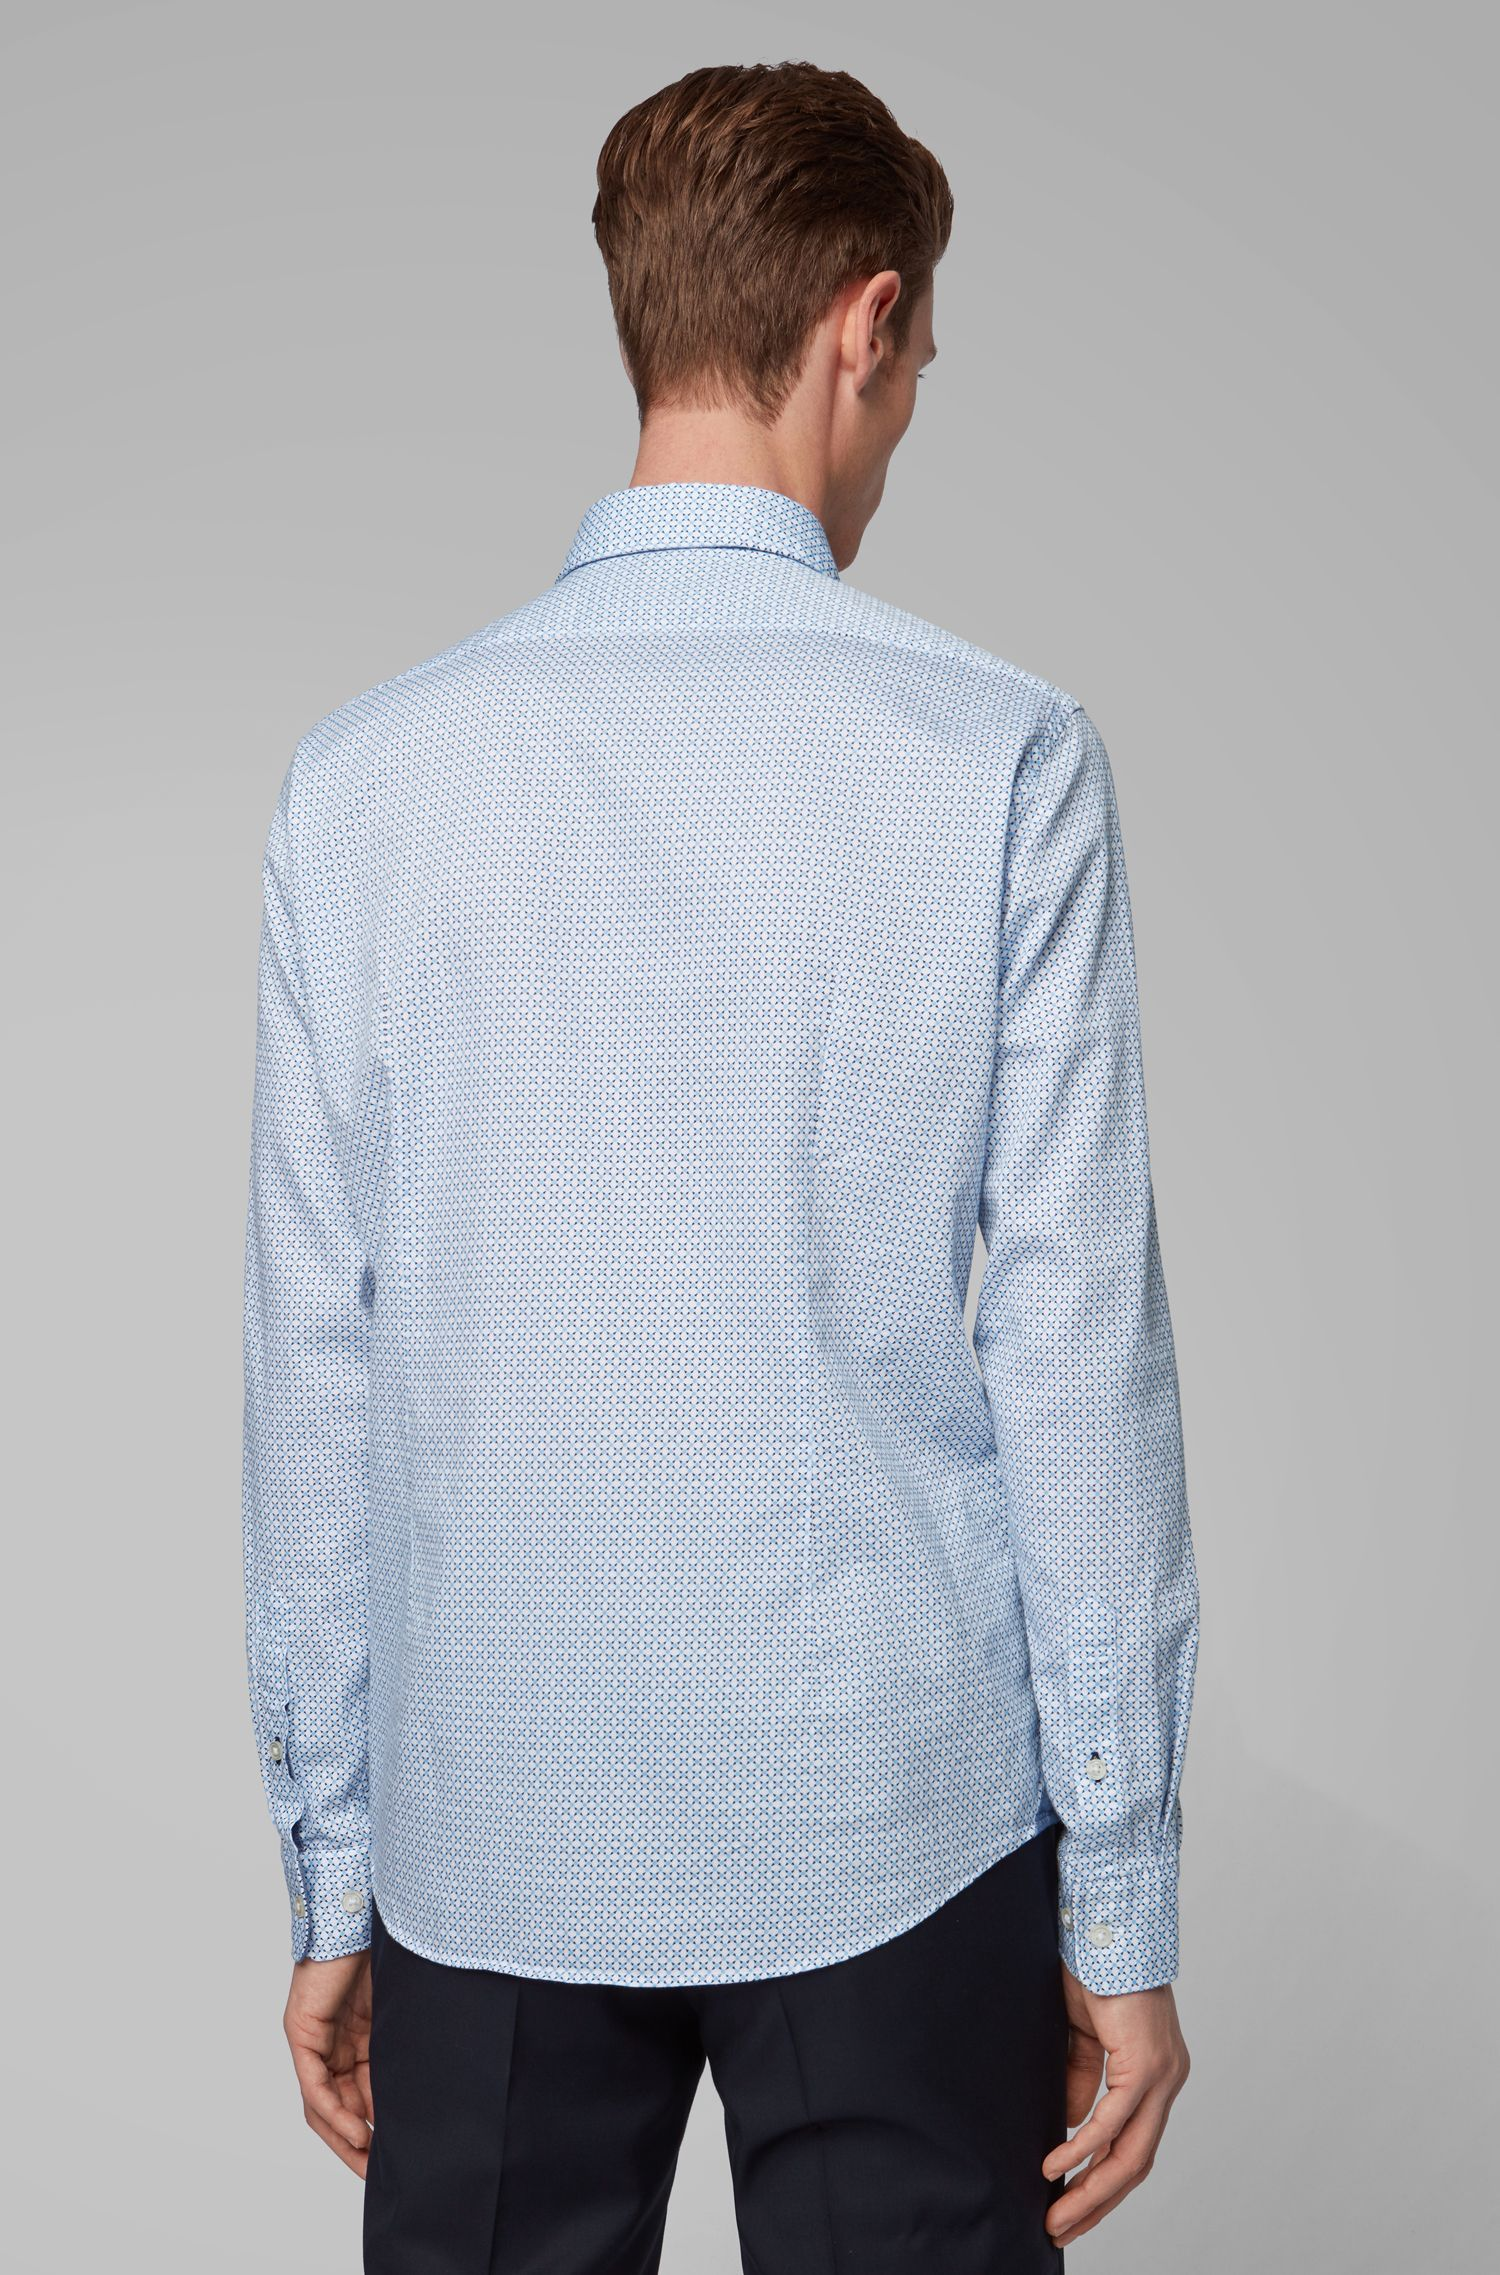 Regular-fit shirt in two-tone-printed dobby cotton, Light Blue